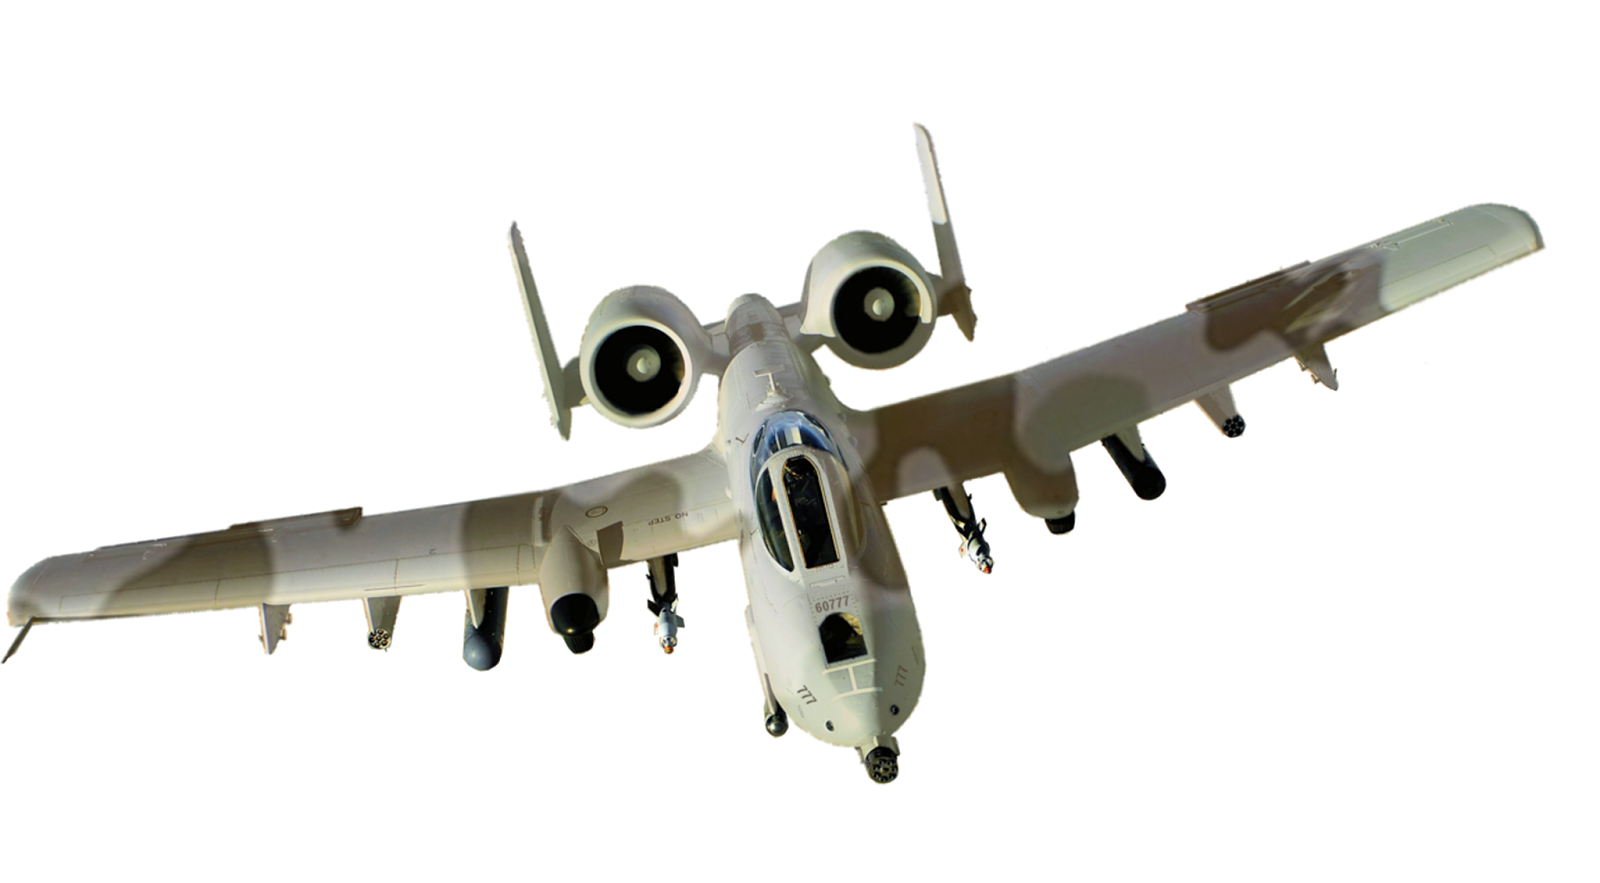 Fairchild Republic A-10 Thunderbolt II Airplane Common warthog ... banner transparent library